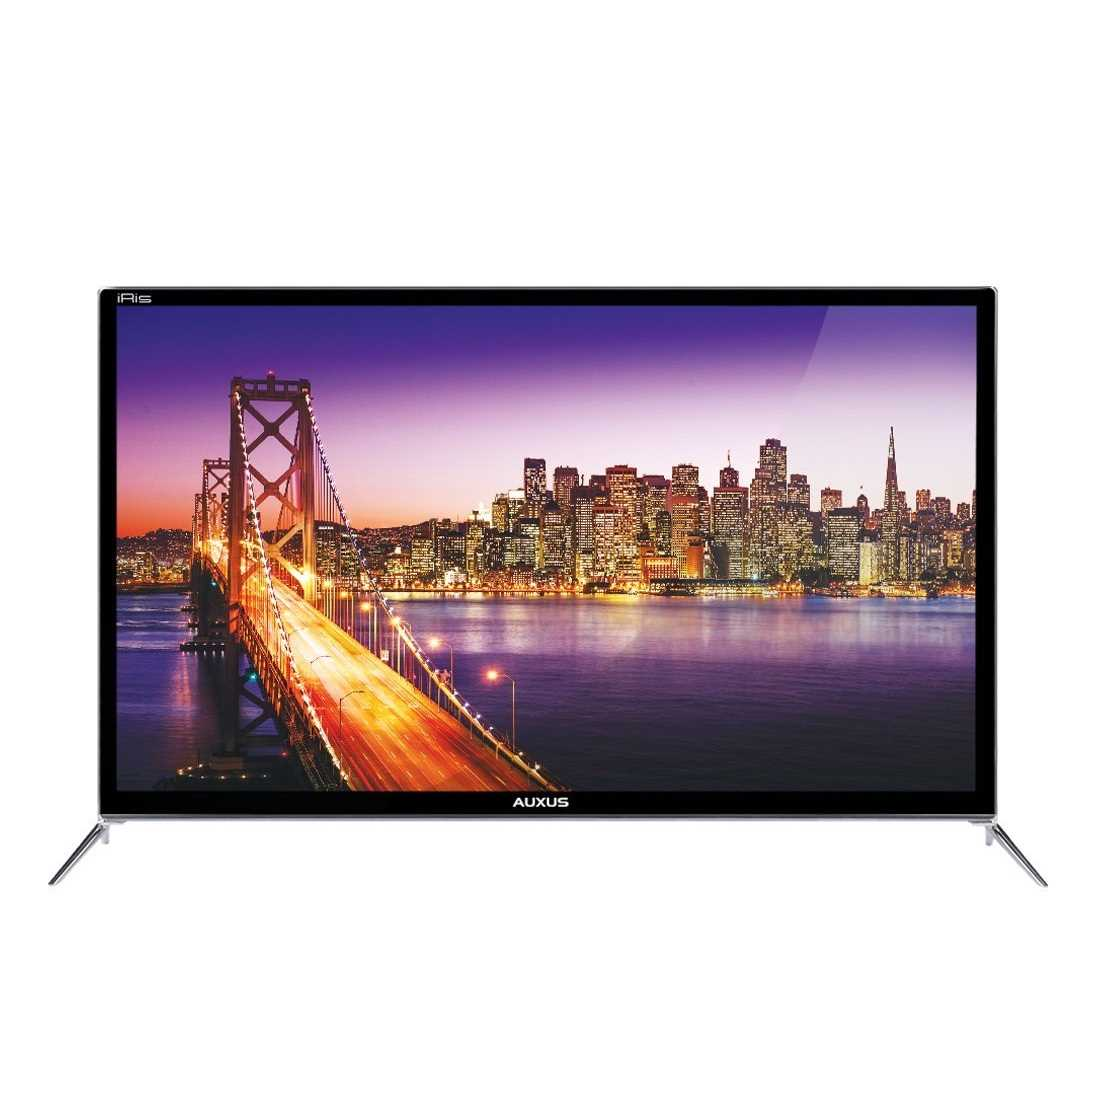 Auxus iRis AX40ADG01-SM 40 Inch Full HD Smart Android LED Television